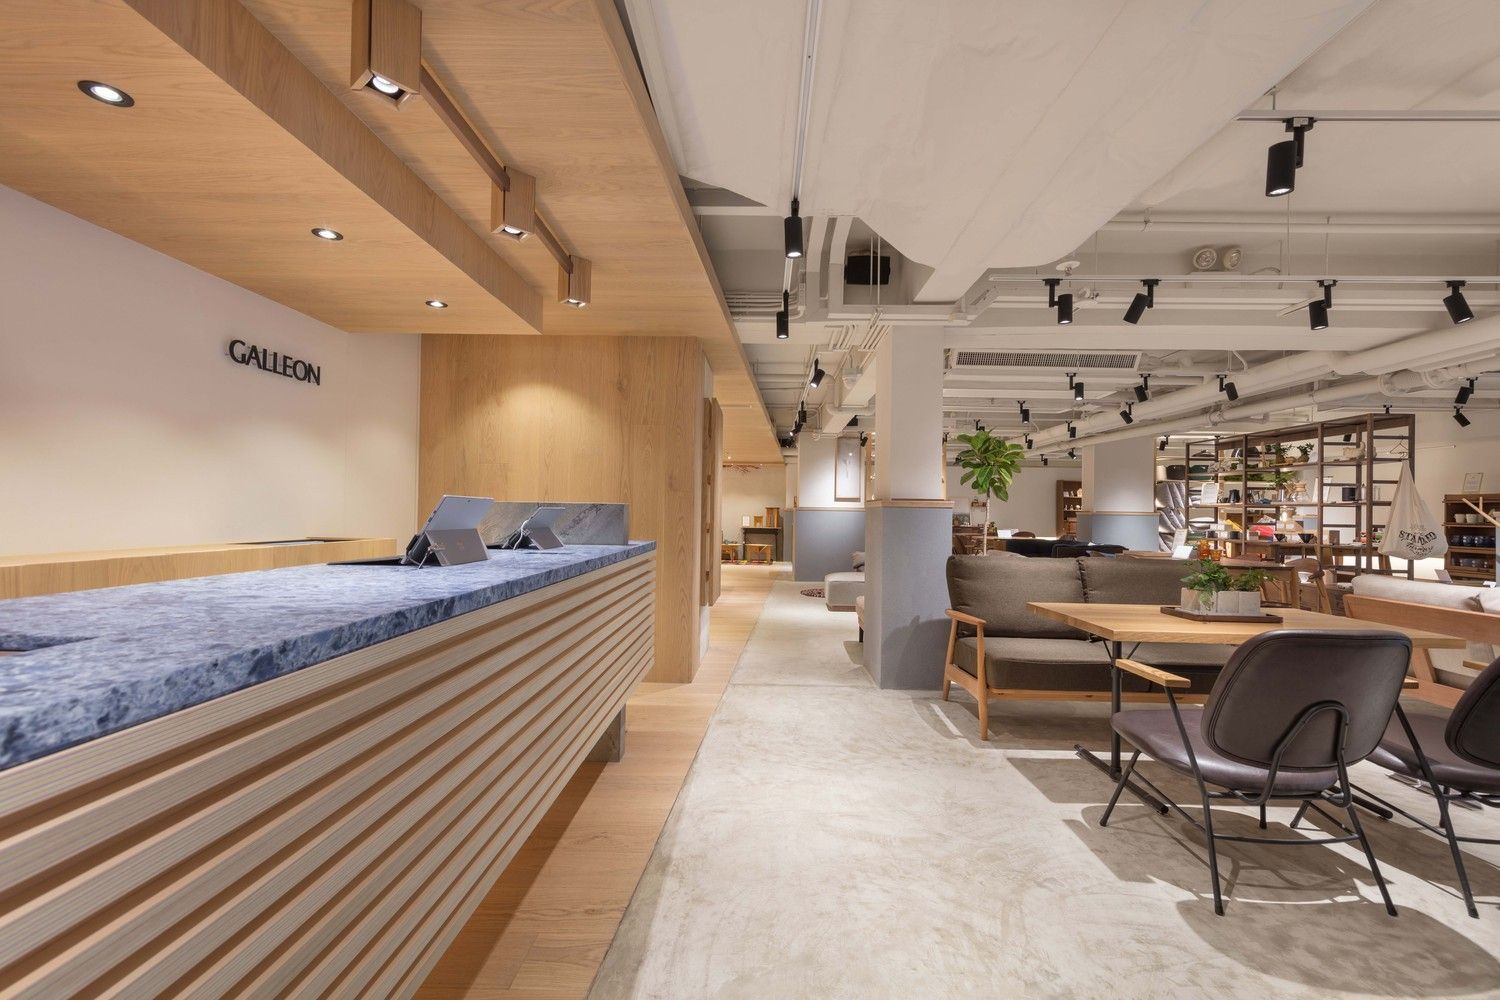 Studio Adjective Is An Hong Kong Based Interior Design Agency Sharing Diffe Adjectives